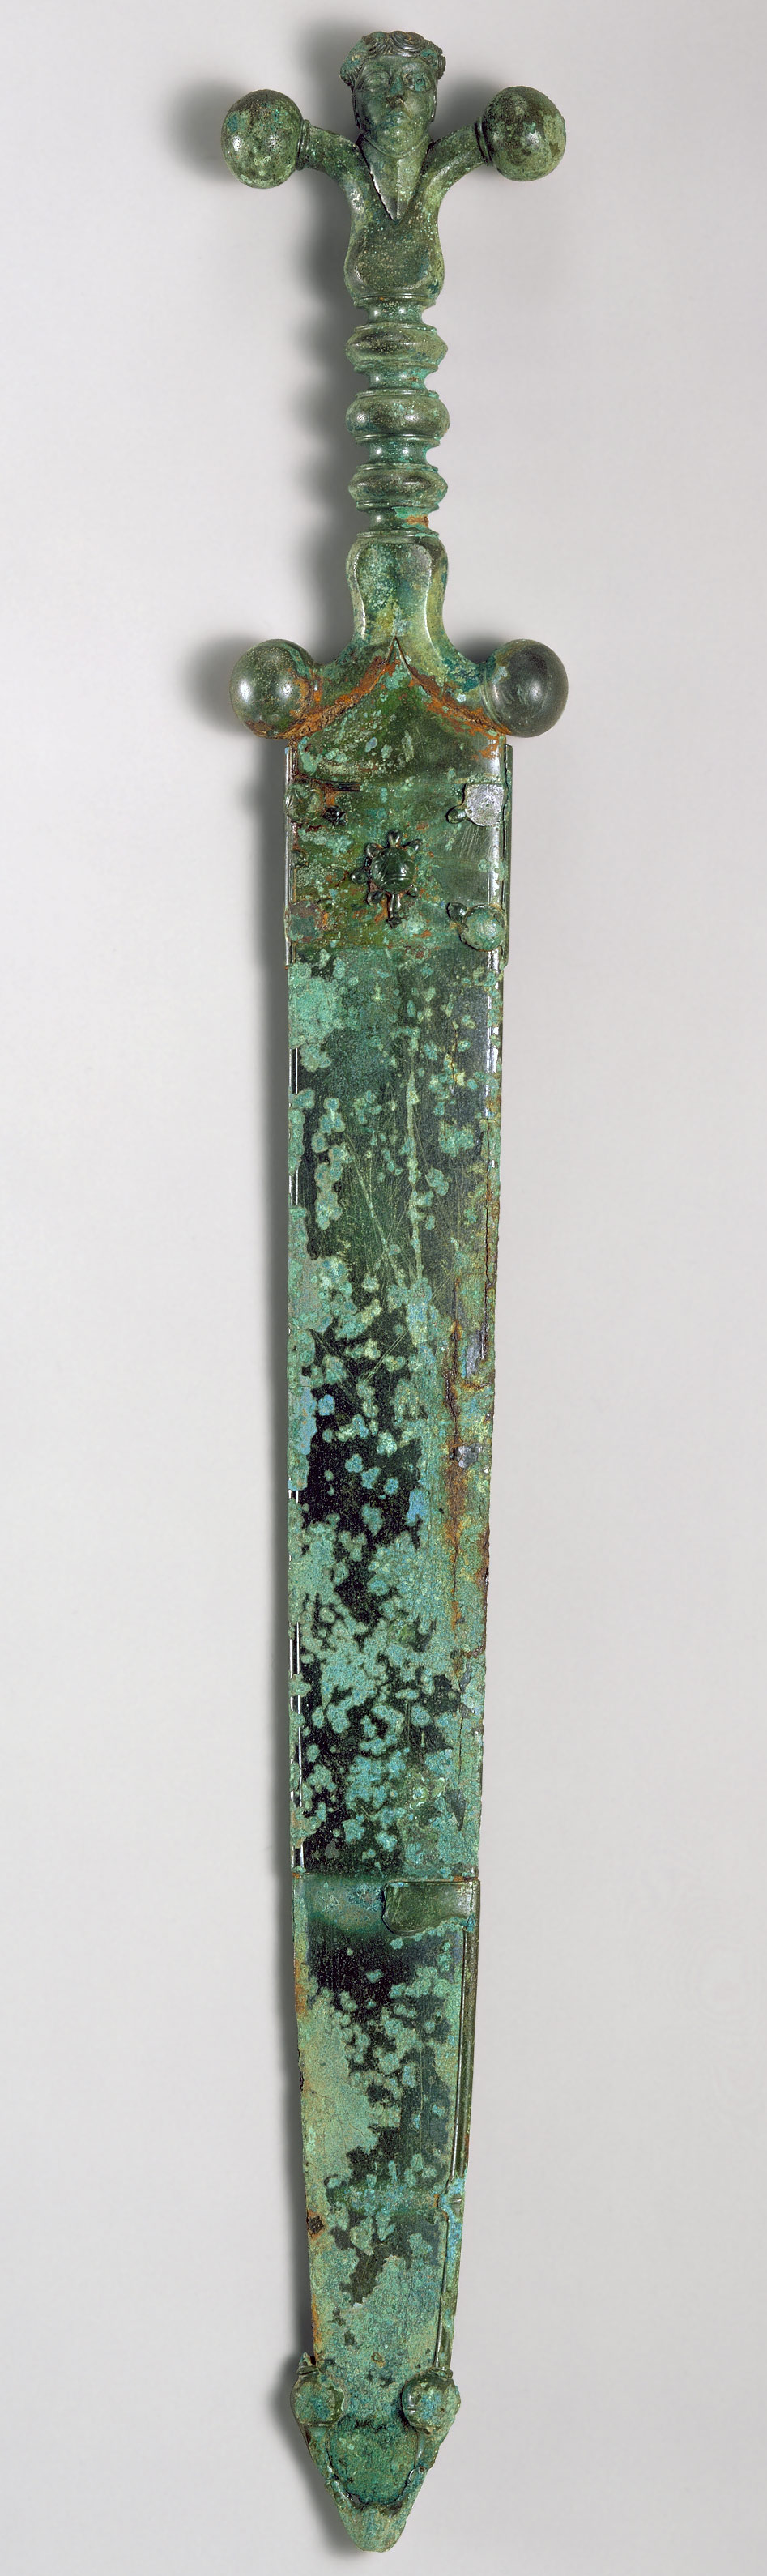 Sword, mid-1st century B.C.; Late Iron Age; Iron blade, copper alloy hilt and scabbard